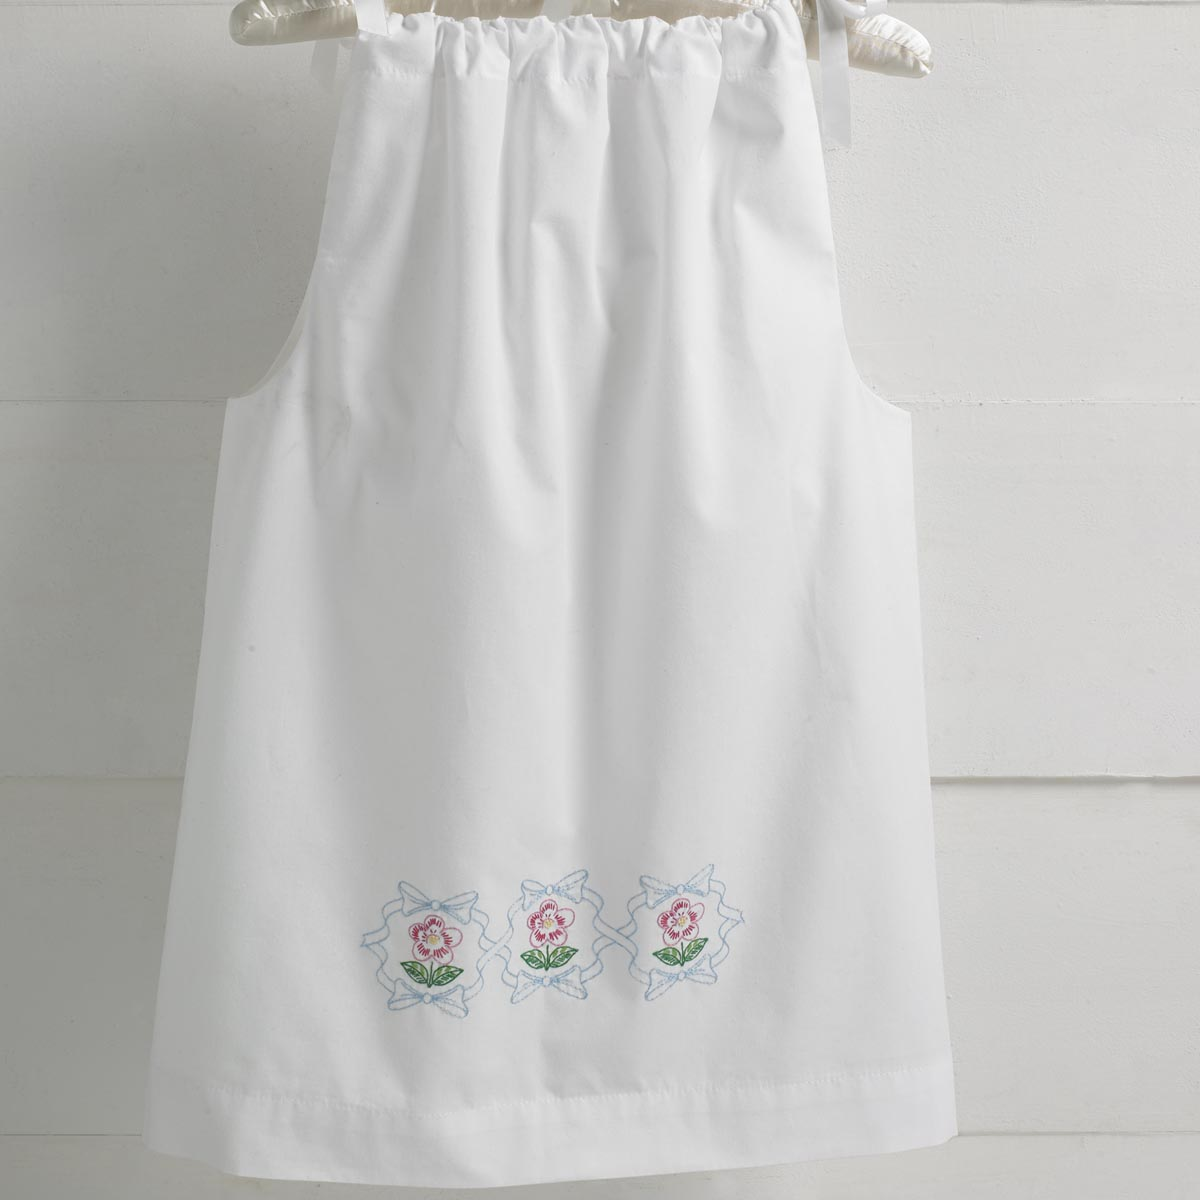 Bucilla ® Stamped Cross Stitch & Embroidery - Pillowcase Dress - Floral Ribbon